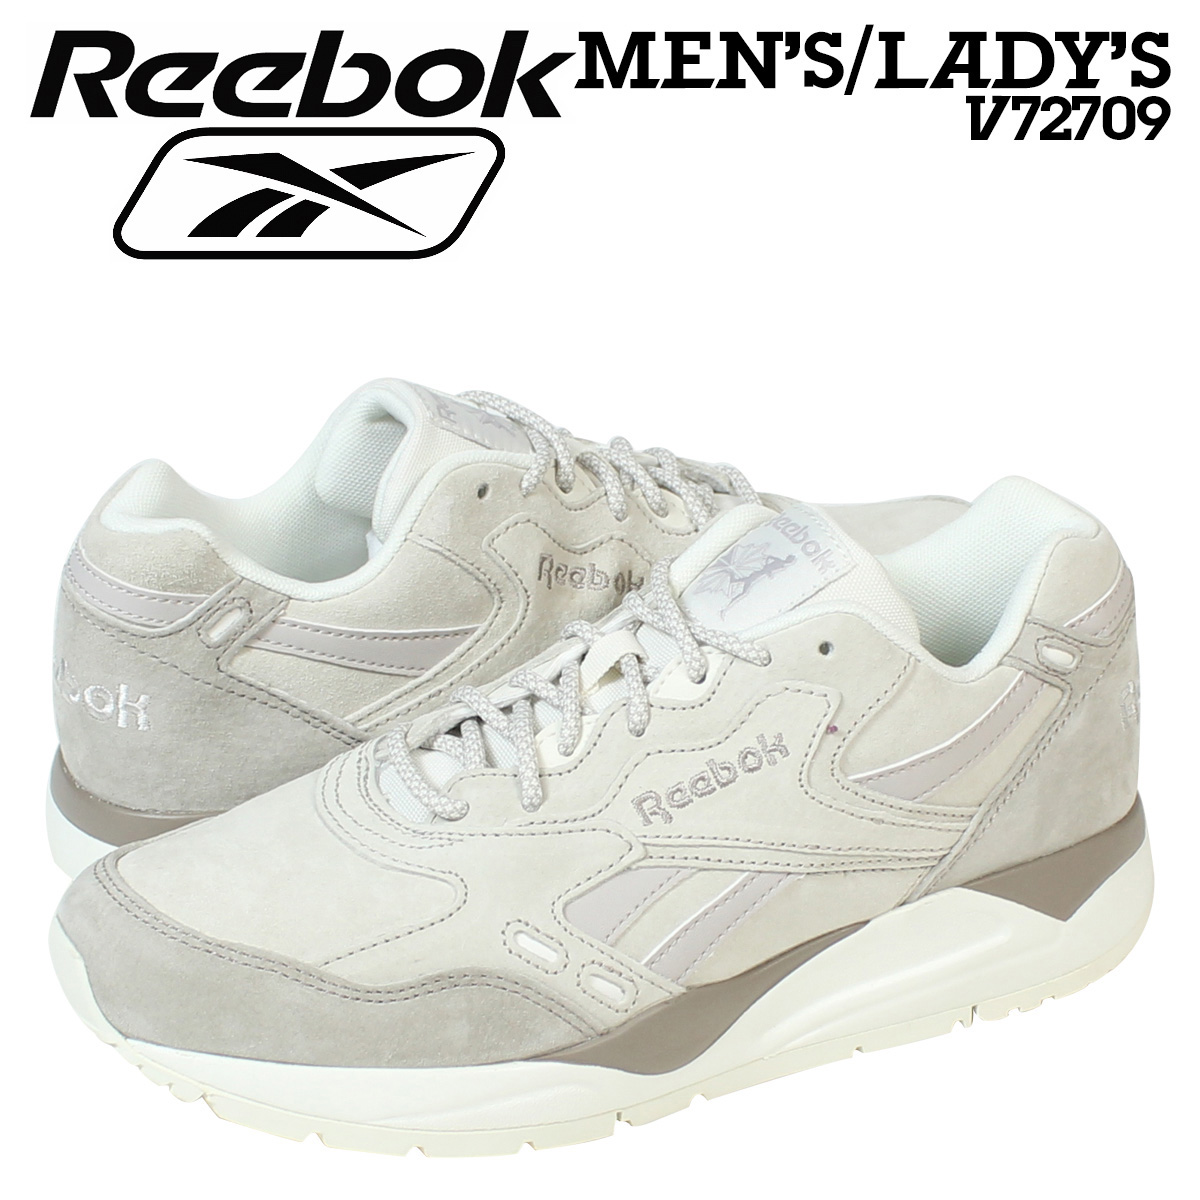 Reebok Reebok Bolton sneakers BOLTON CP V72709 men gap Dis shoes gray